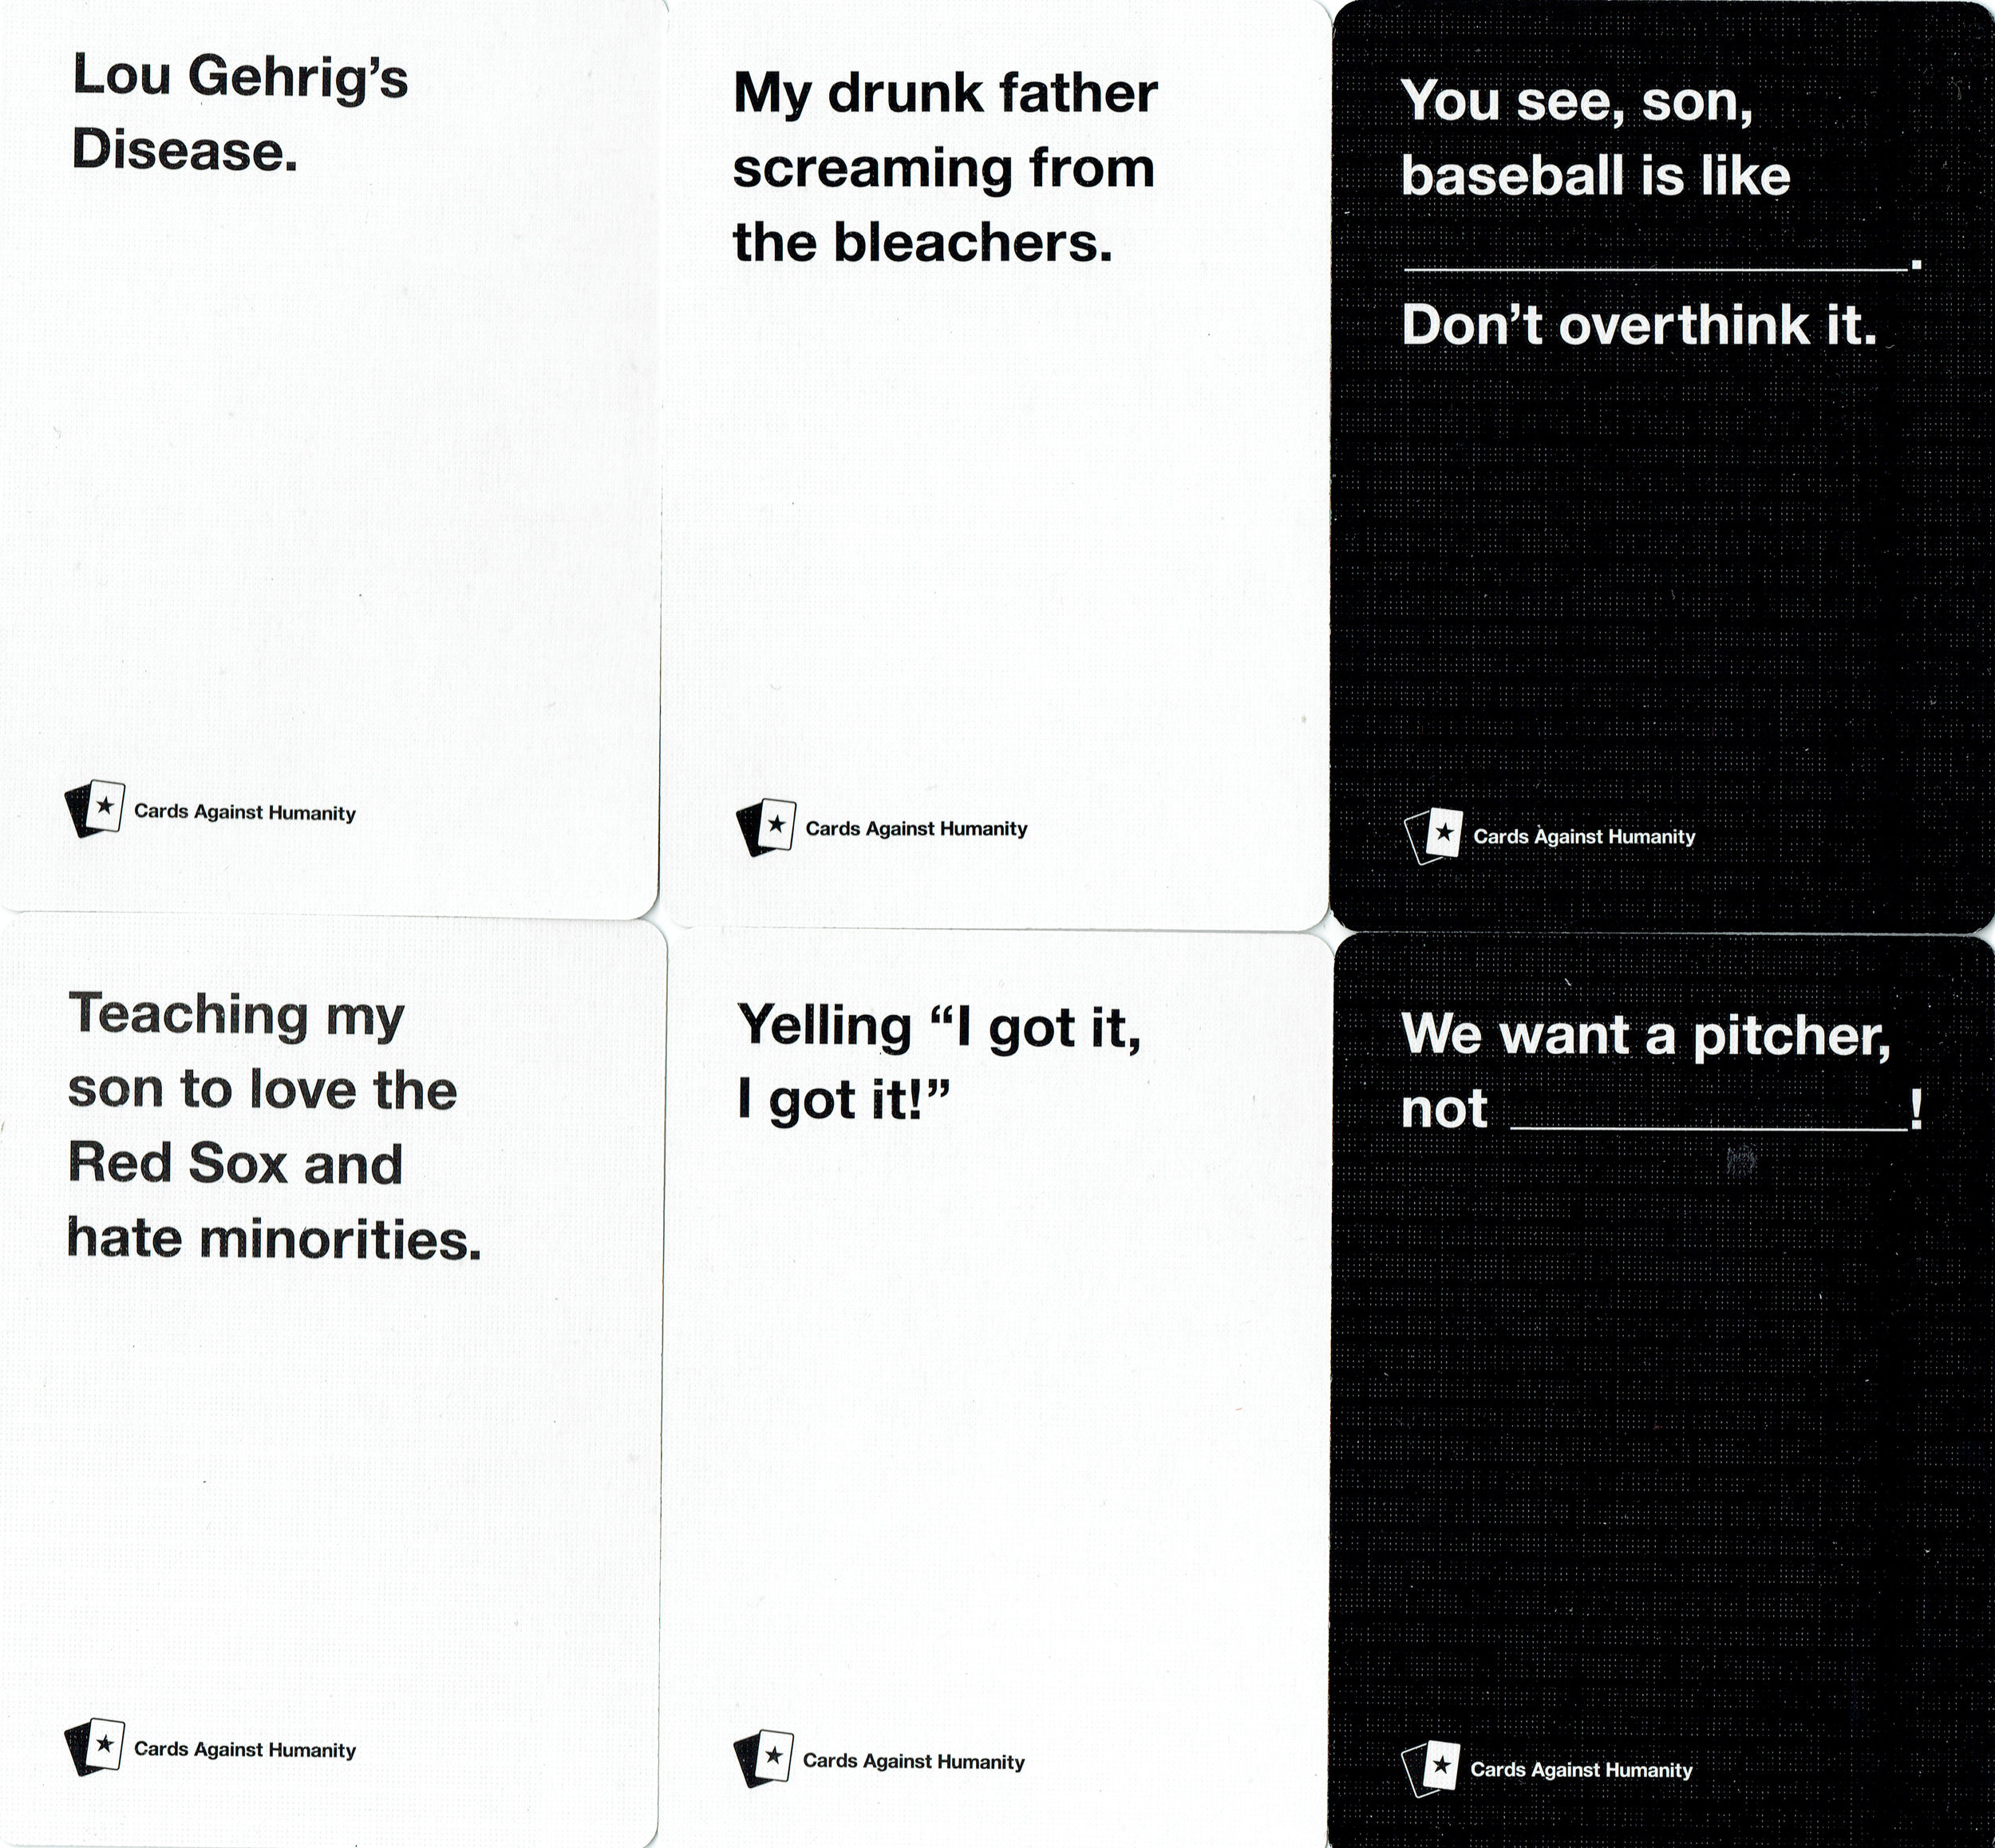 Cards Against Humanity Saves Baseball (fronts)